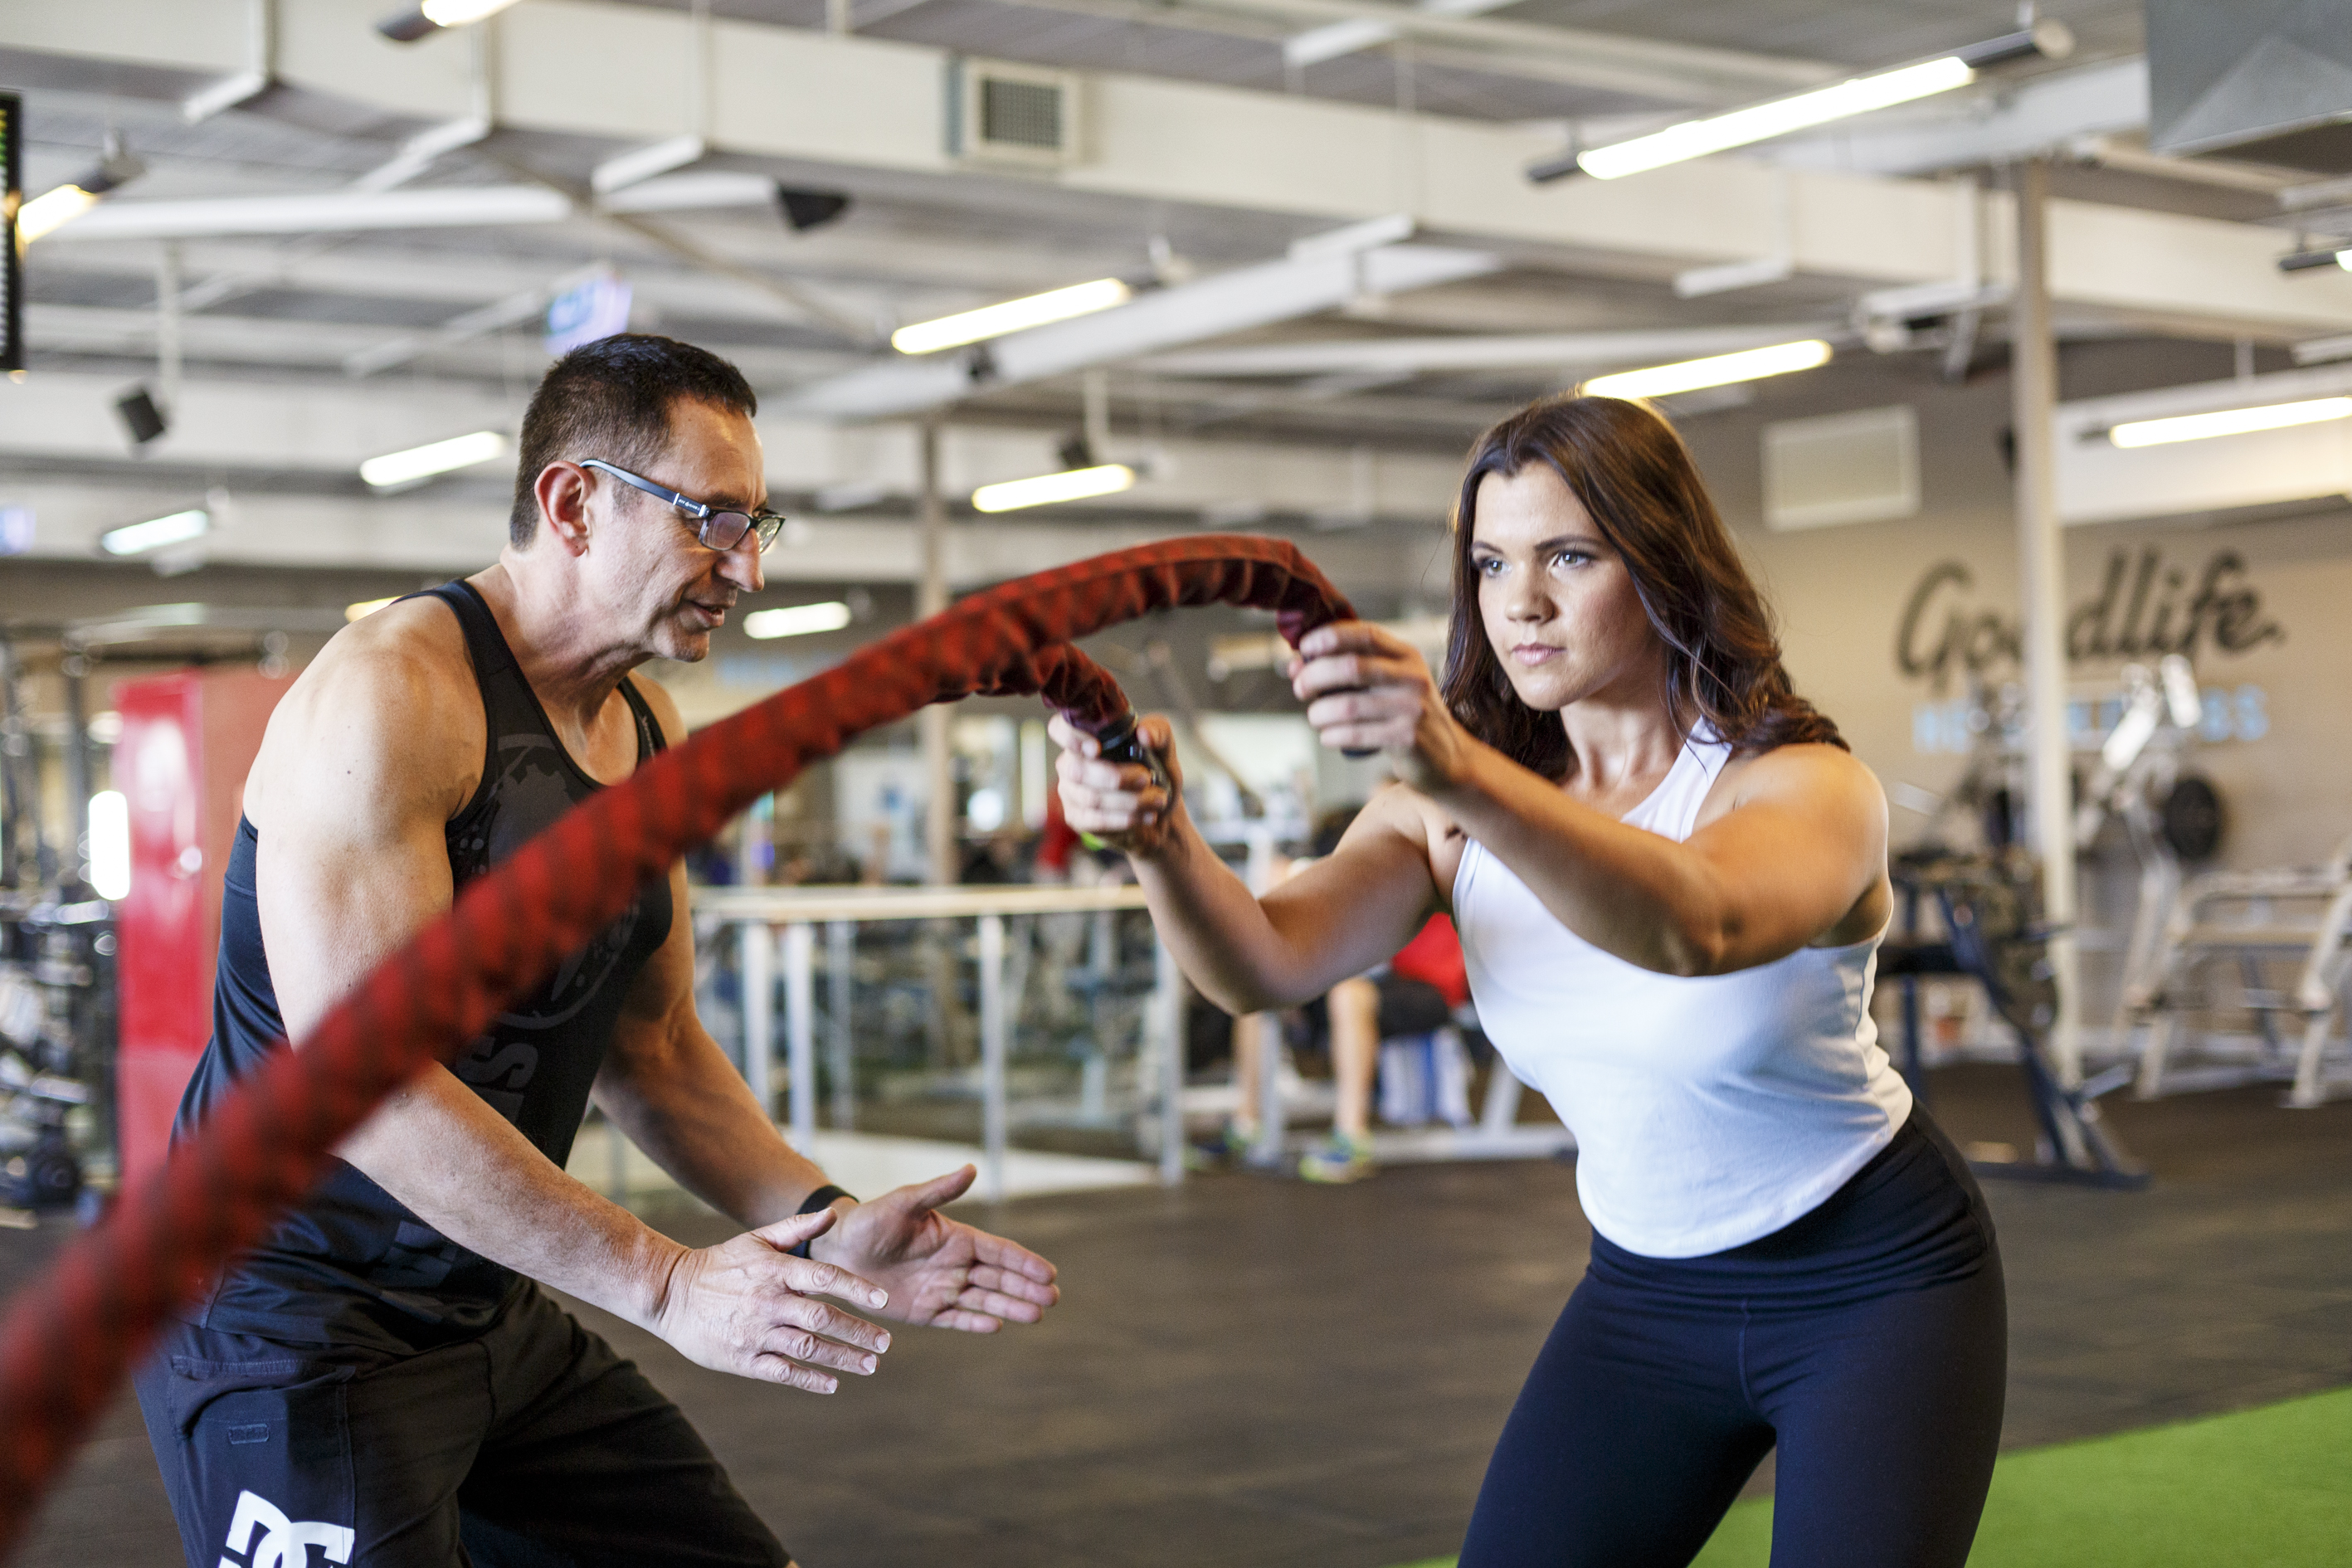 Michael rope training with woman